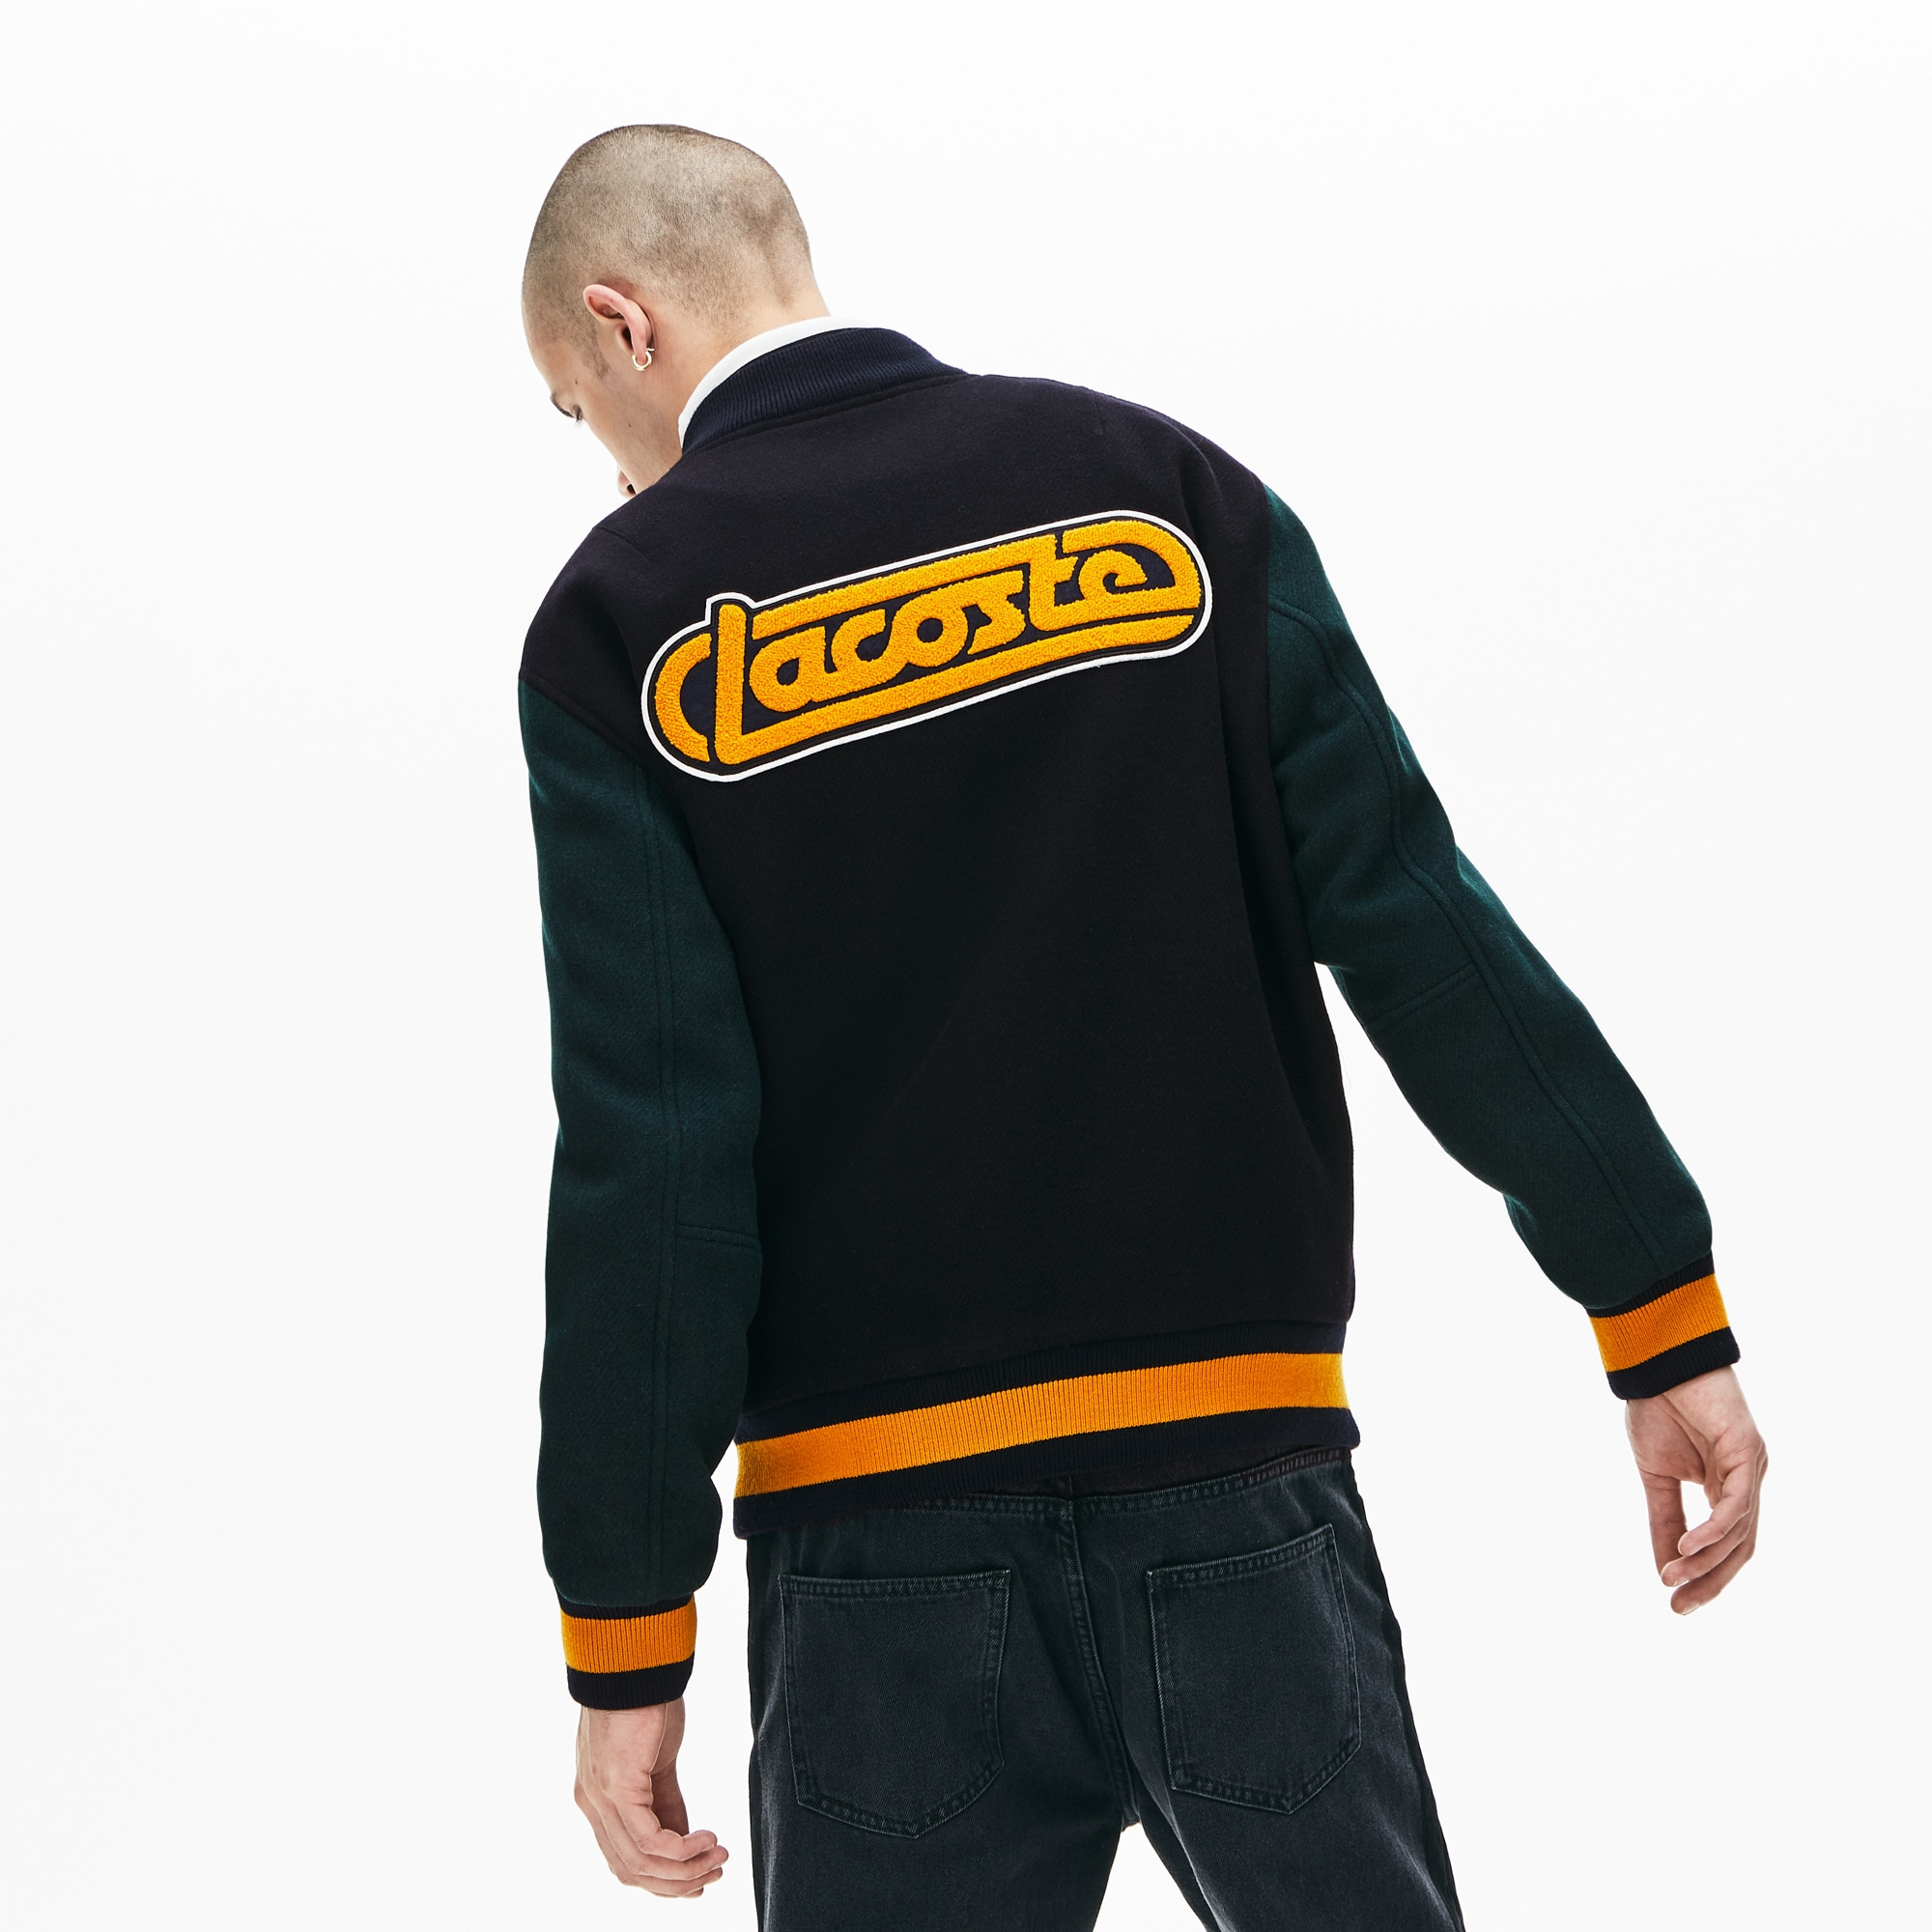 Men's LIVE Retro Dual-Tone Wool Bomber